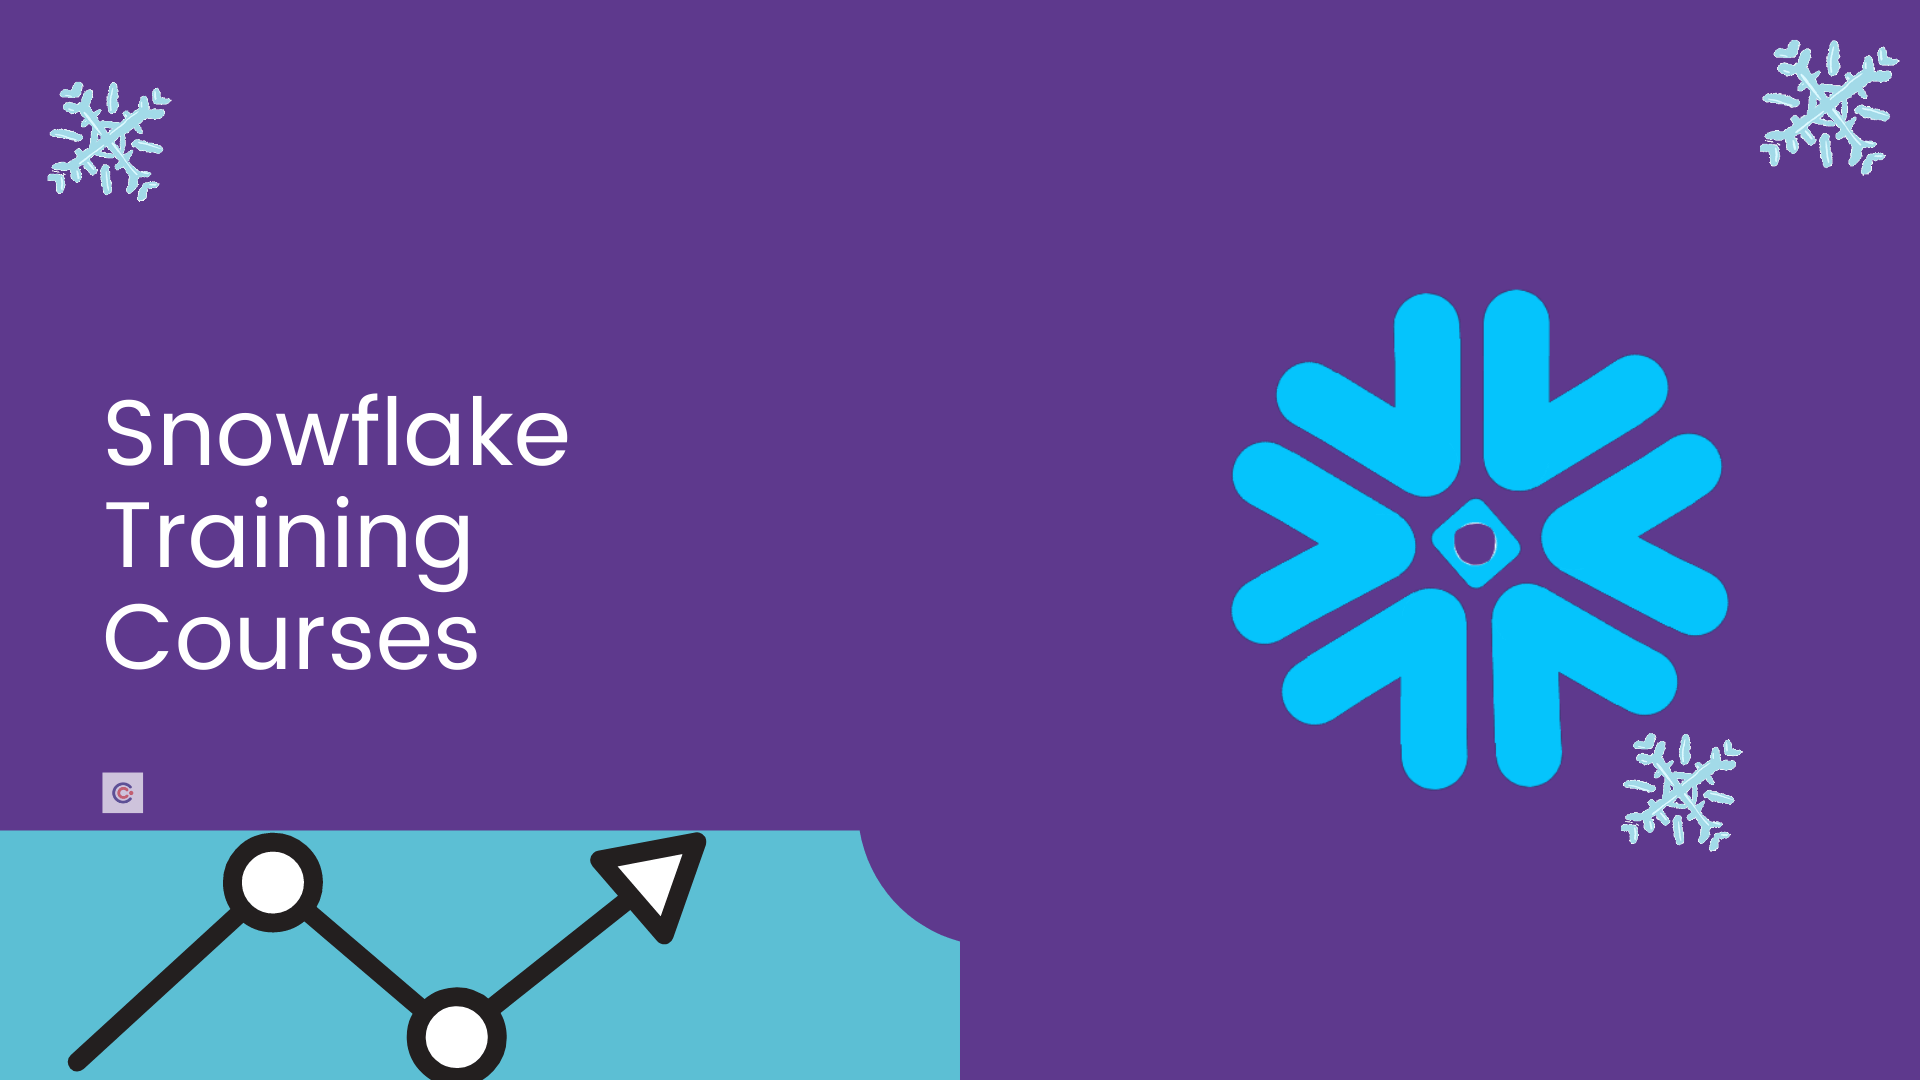 Learn Snowflake Online - 8 Best Snowflake Training Courses